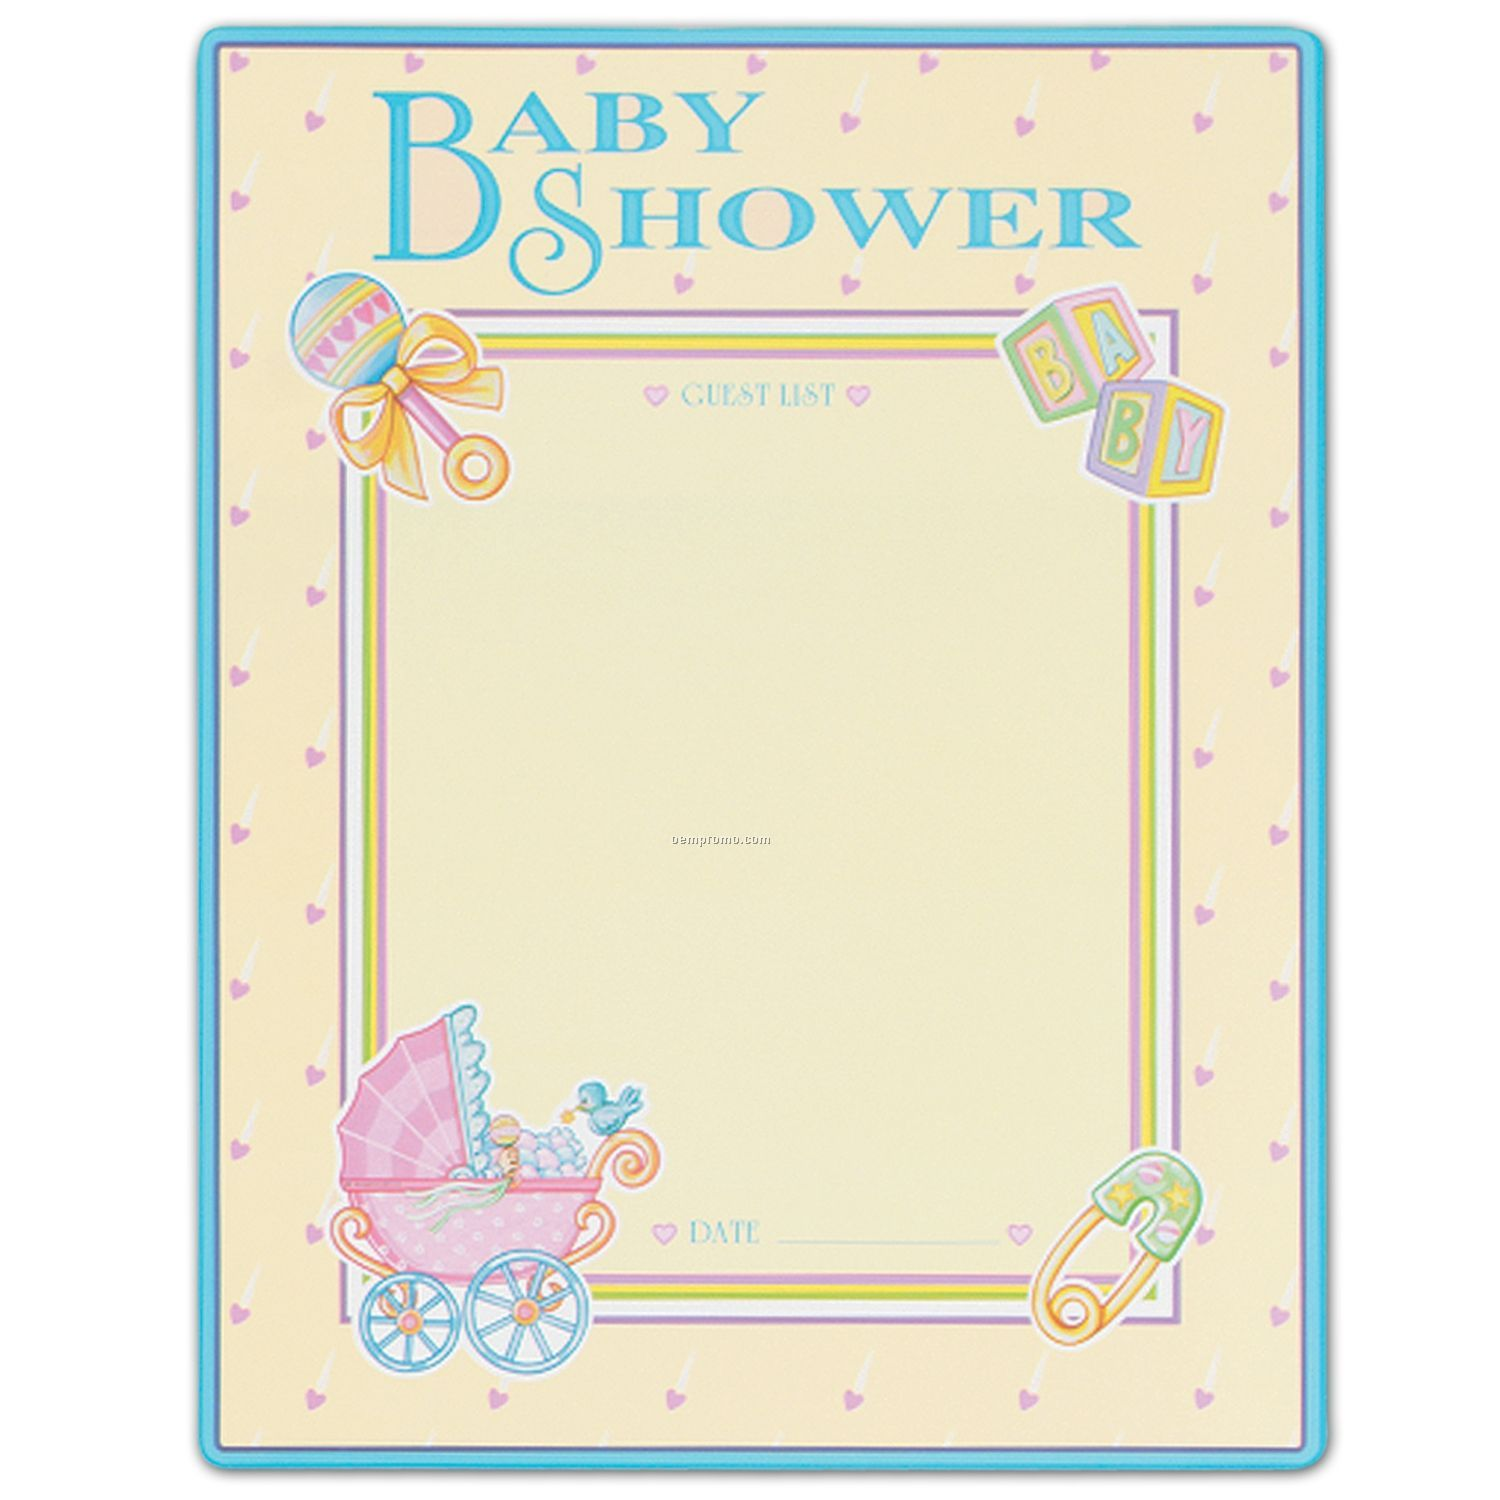 Letter From Baby To Baby Shower Guests: Boards-Memo,China Wholesale Boards-Memo-(Page 31